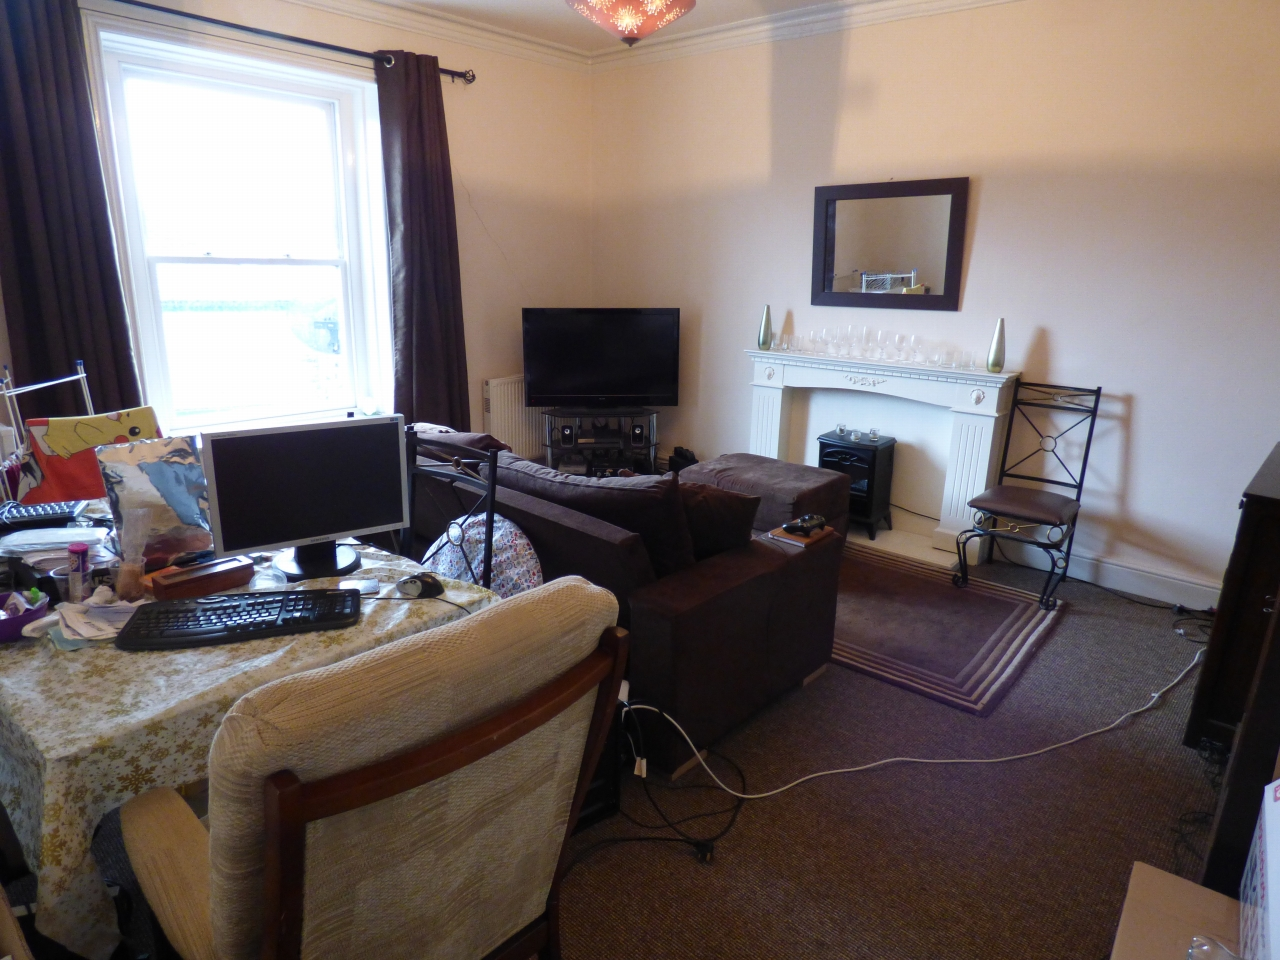 2 Bedroom Retail Property (high Street) For Sale - Image 6